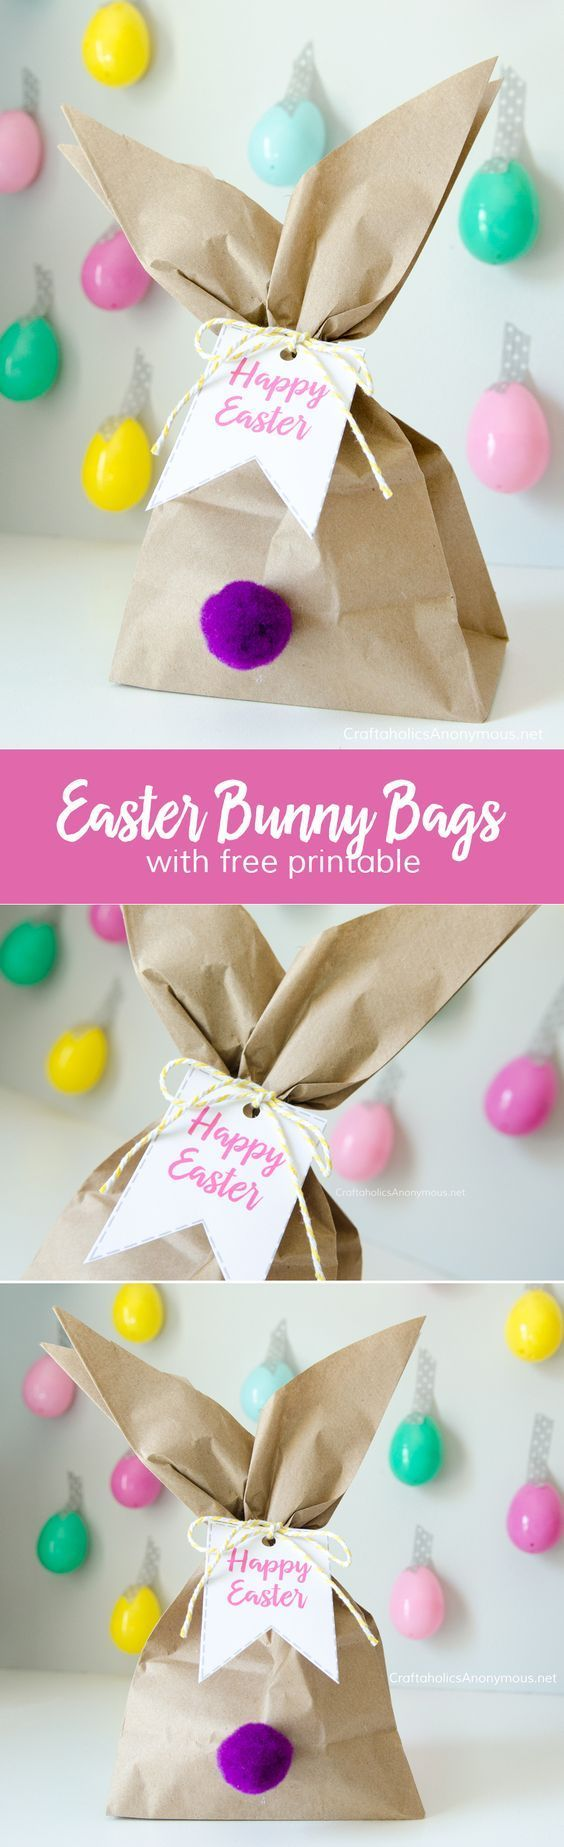 Easy Easter Bunny Gift Bags idea || Make great favors, gifts, decor, etc. Love the easter egg + washi tape backdrop!